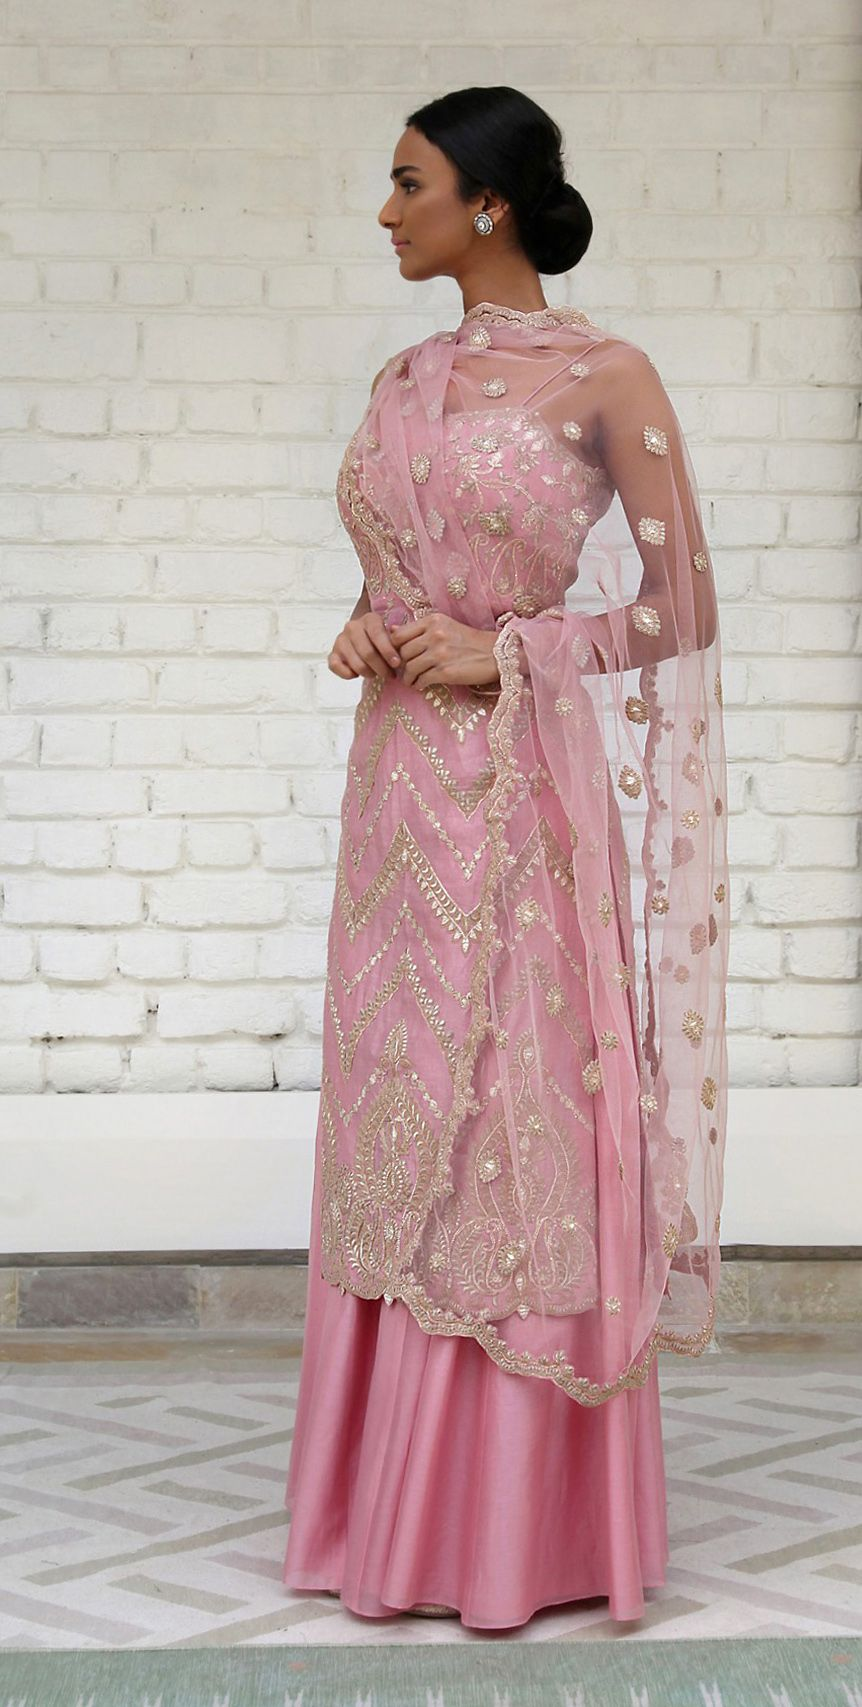 184b9465f6 Blush pink Chanderi silk straight shirt with all over gotta-tilla embroidery;  paired with a soft tulle dupatta and silk sharara.